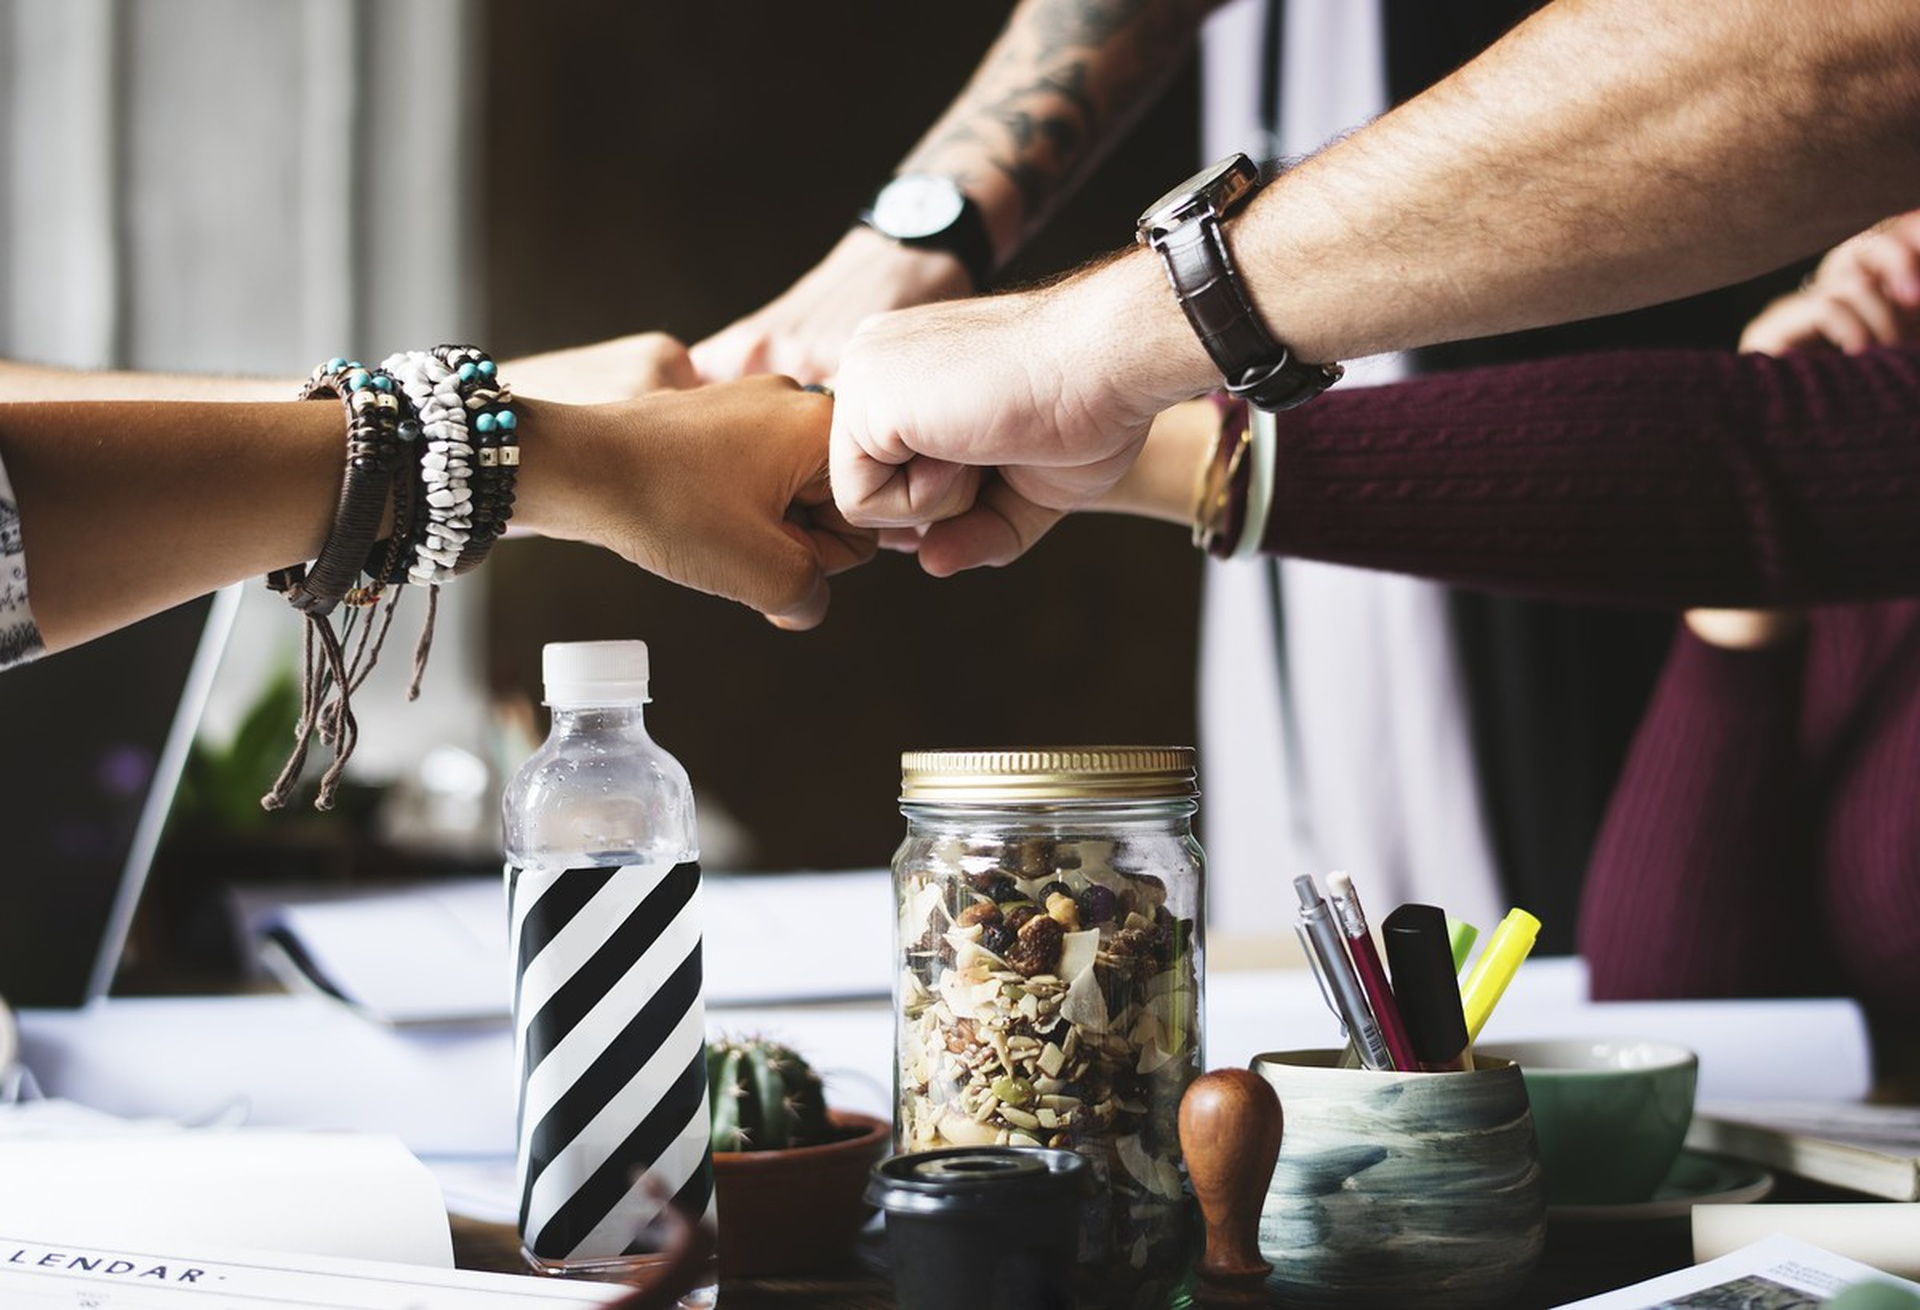 ​Want people to work together? Familiarity, ability to pick partners could be key